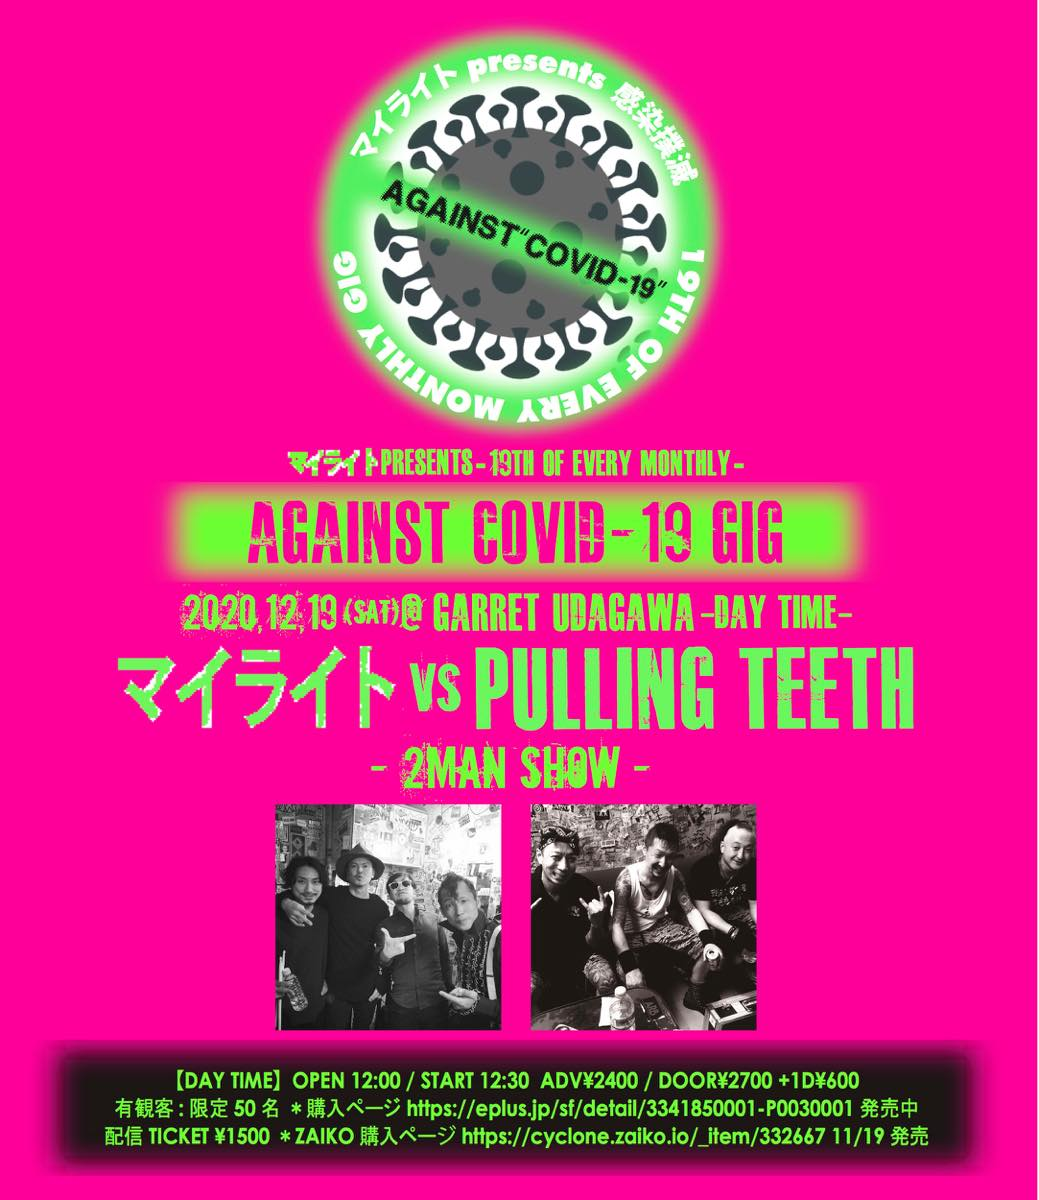 マイライト PULLING TEETH 〜2MAN SHOW〜